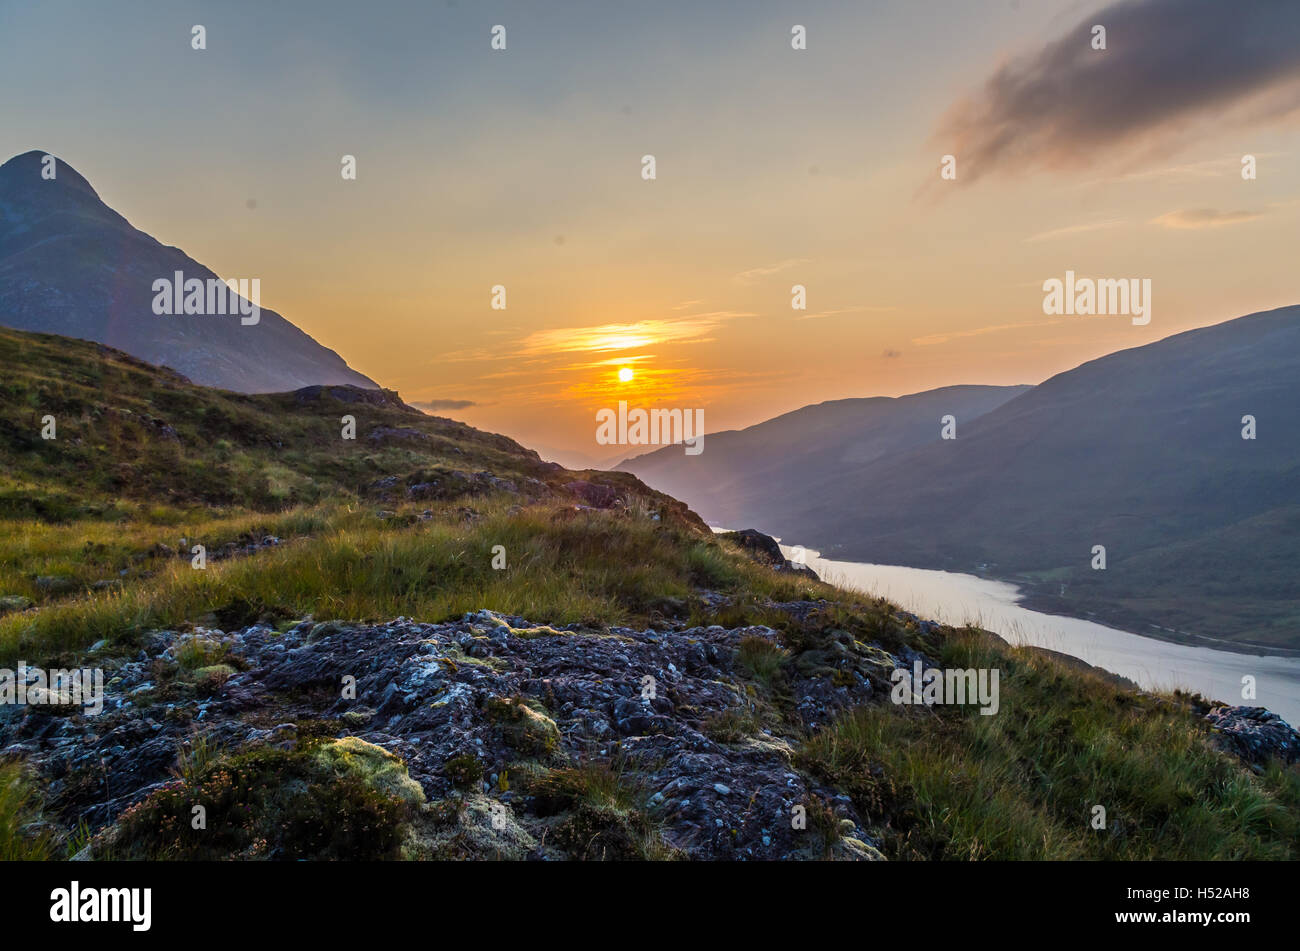 Beautiful sunset at Loch leven in Scotland, Great Brittain, Northern Europe - Stock Image